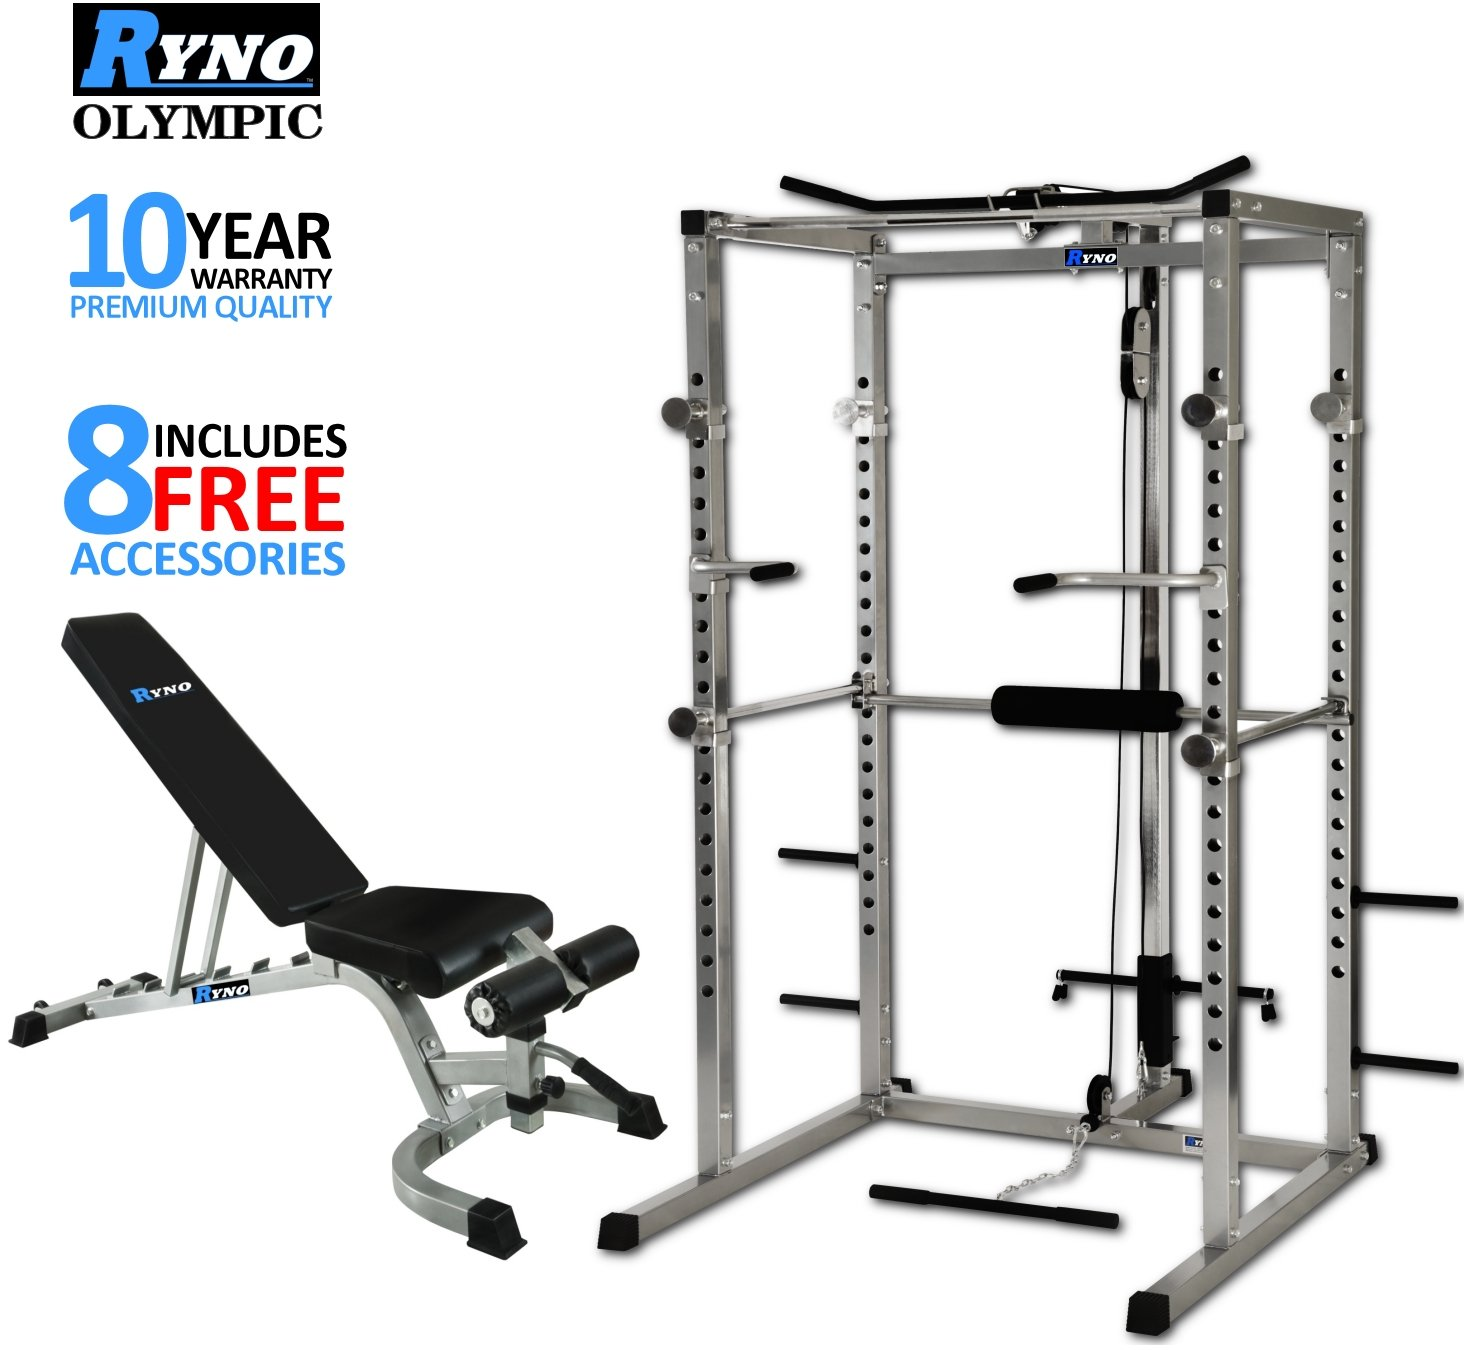 prod l op sharpen sears product spin hei rack wid outlet details weider d jsp power pro cage